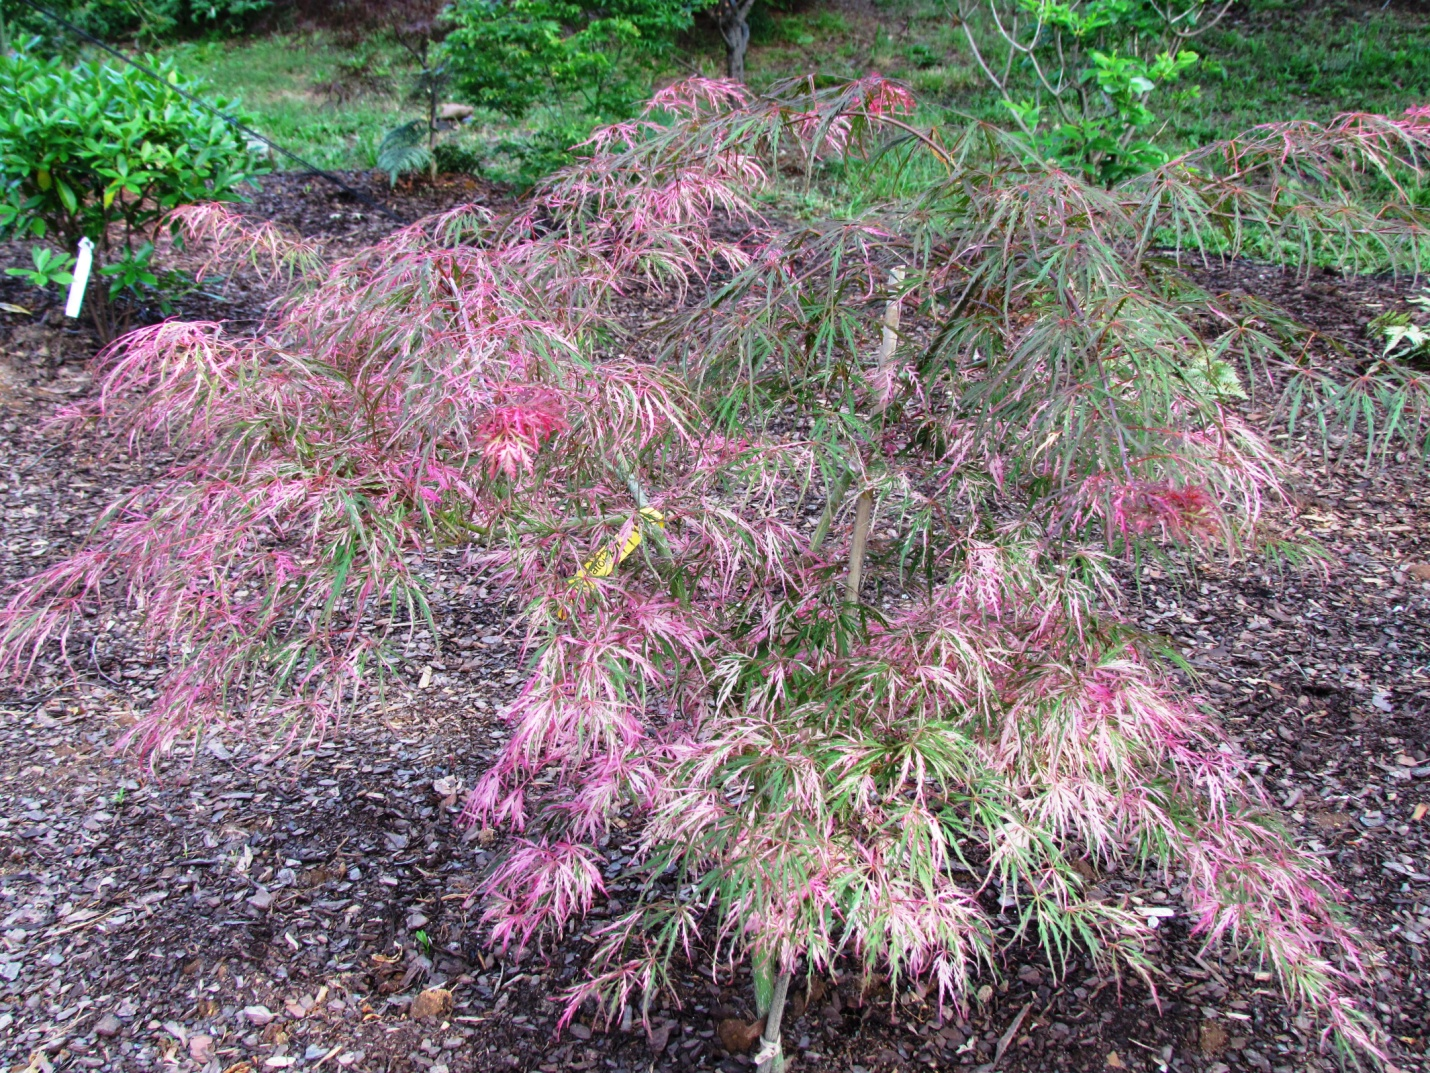 Variegated plants part 1 hardy plant society of new england for Acer palmatum